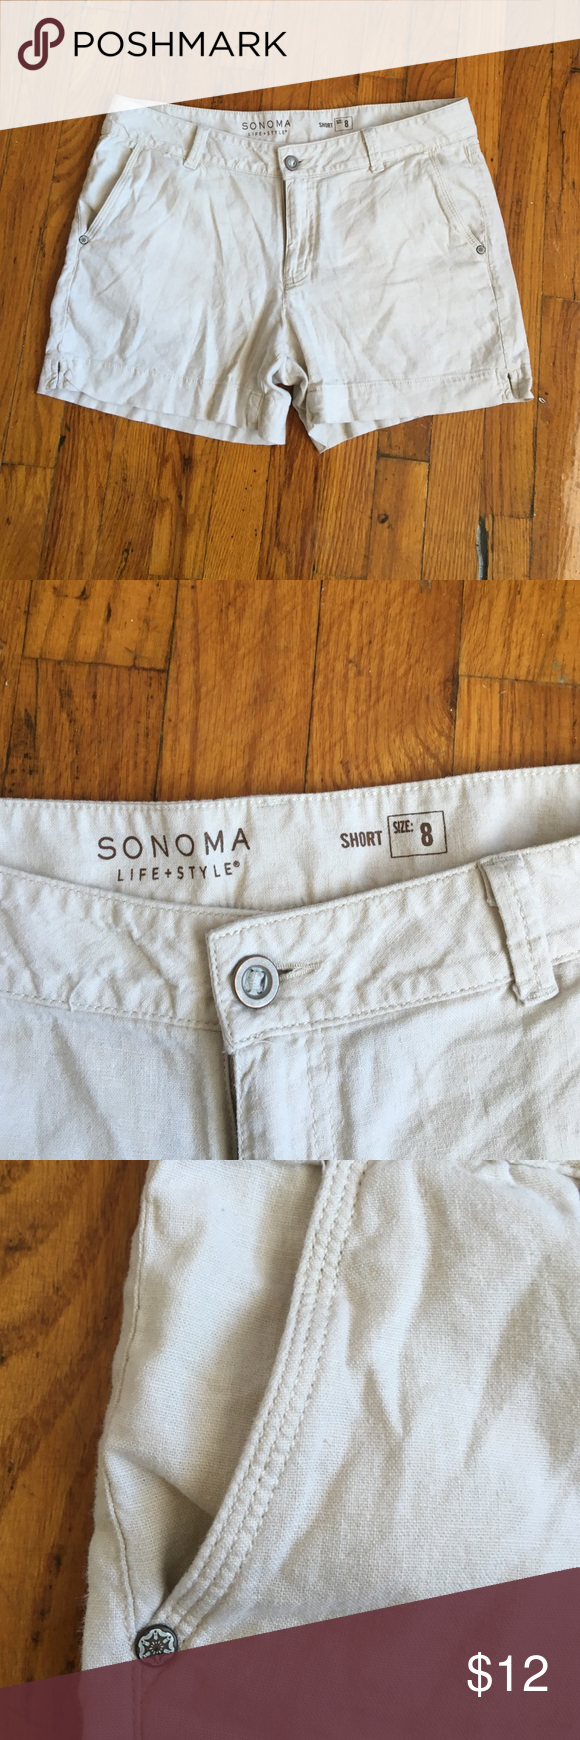 Khaki Shorts Only worn once. Perfect condition. 14 inches from waist to bottom hem. Smoke & Pet free home. Bundle and Save. 🚫NO TRADES🚫 Sonoma Shorts